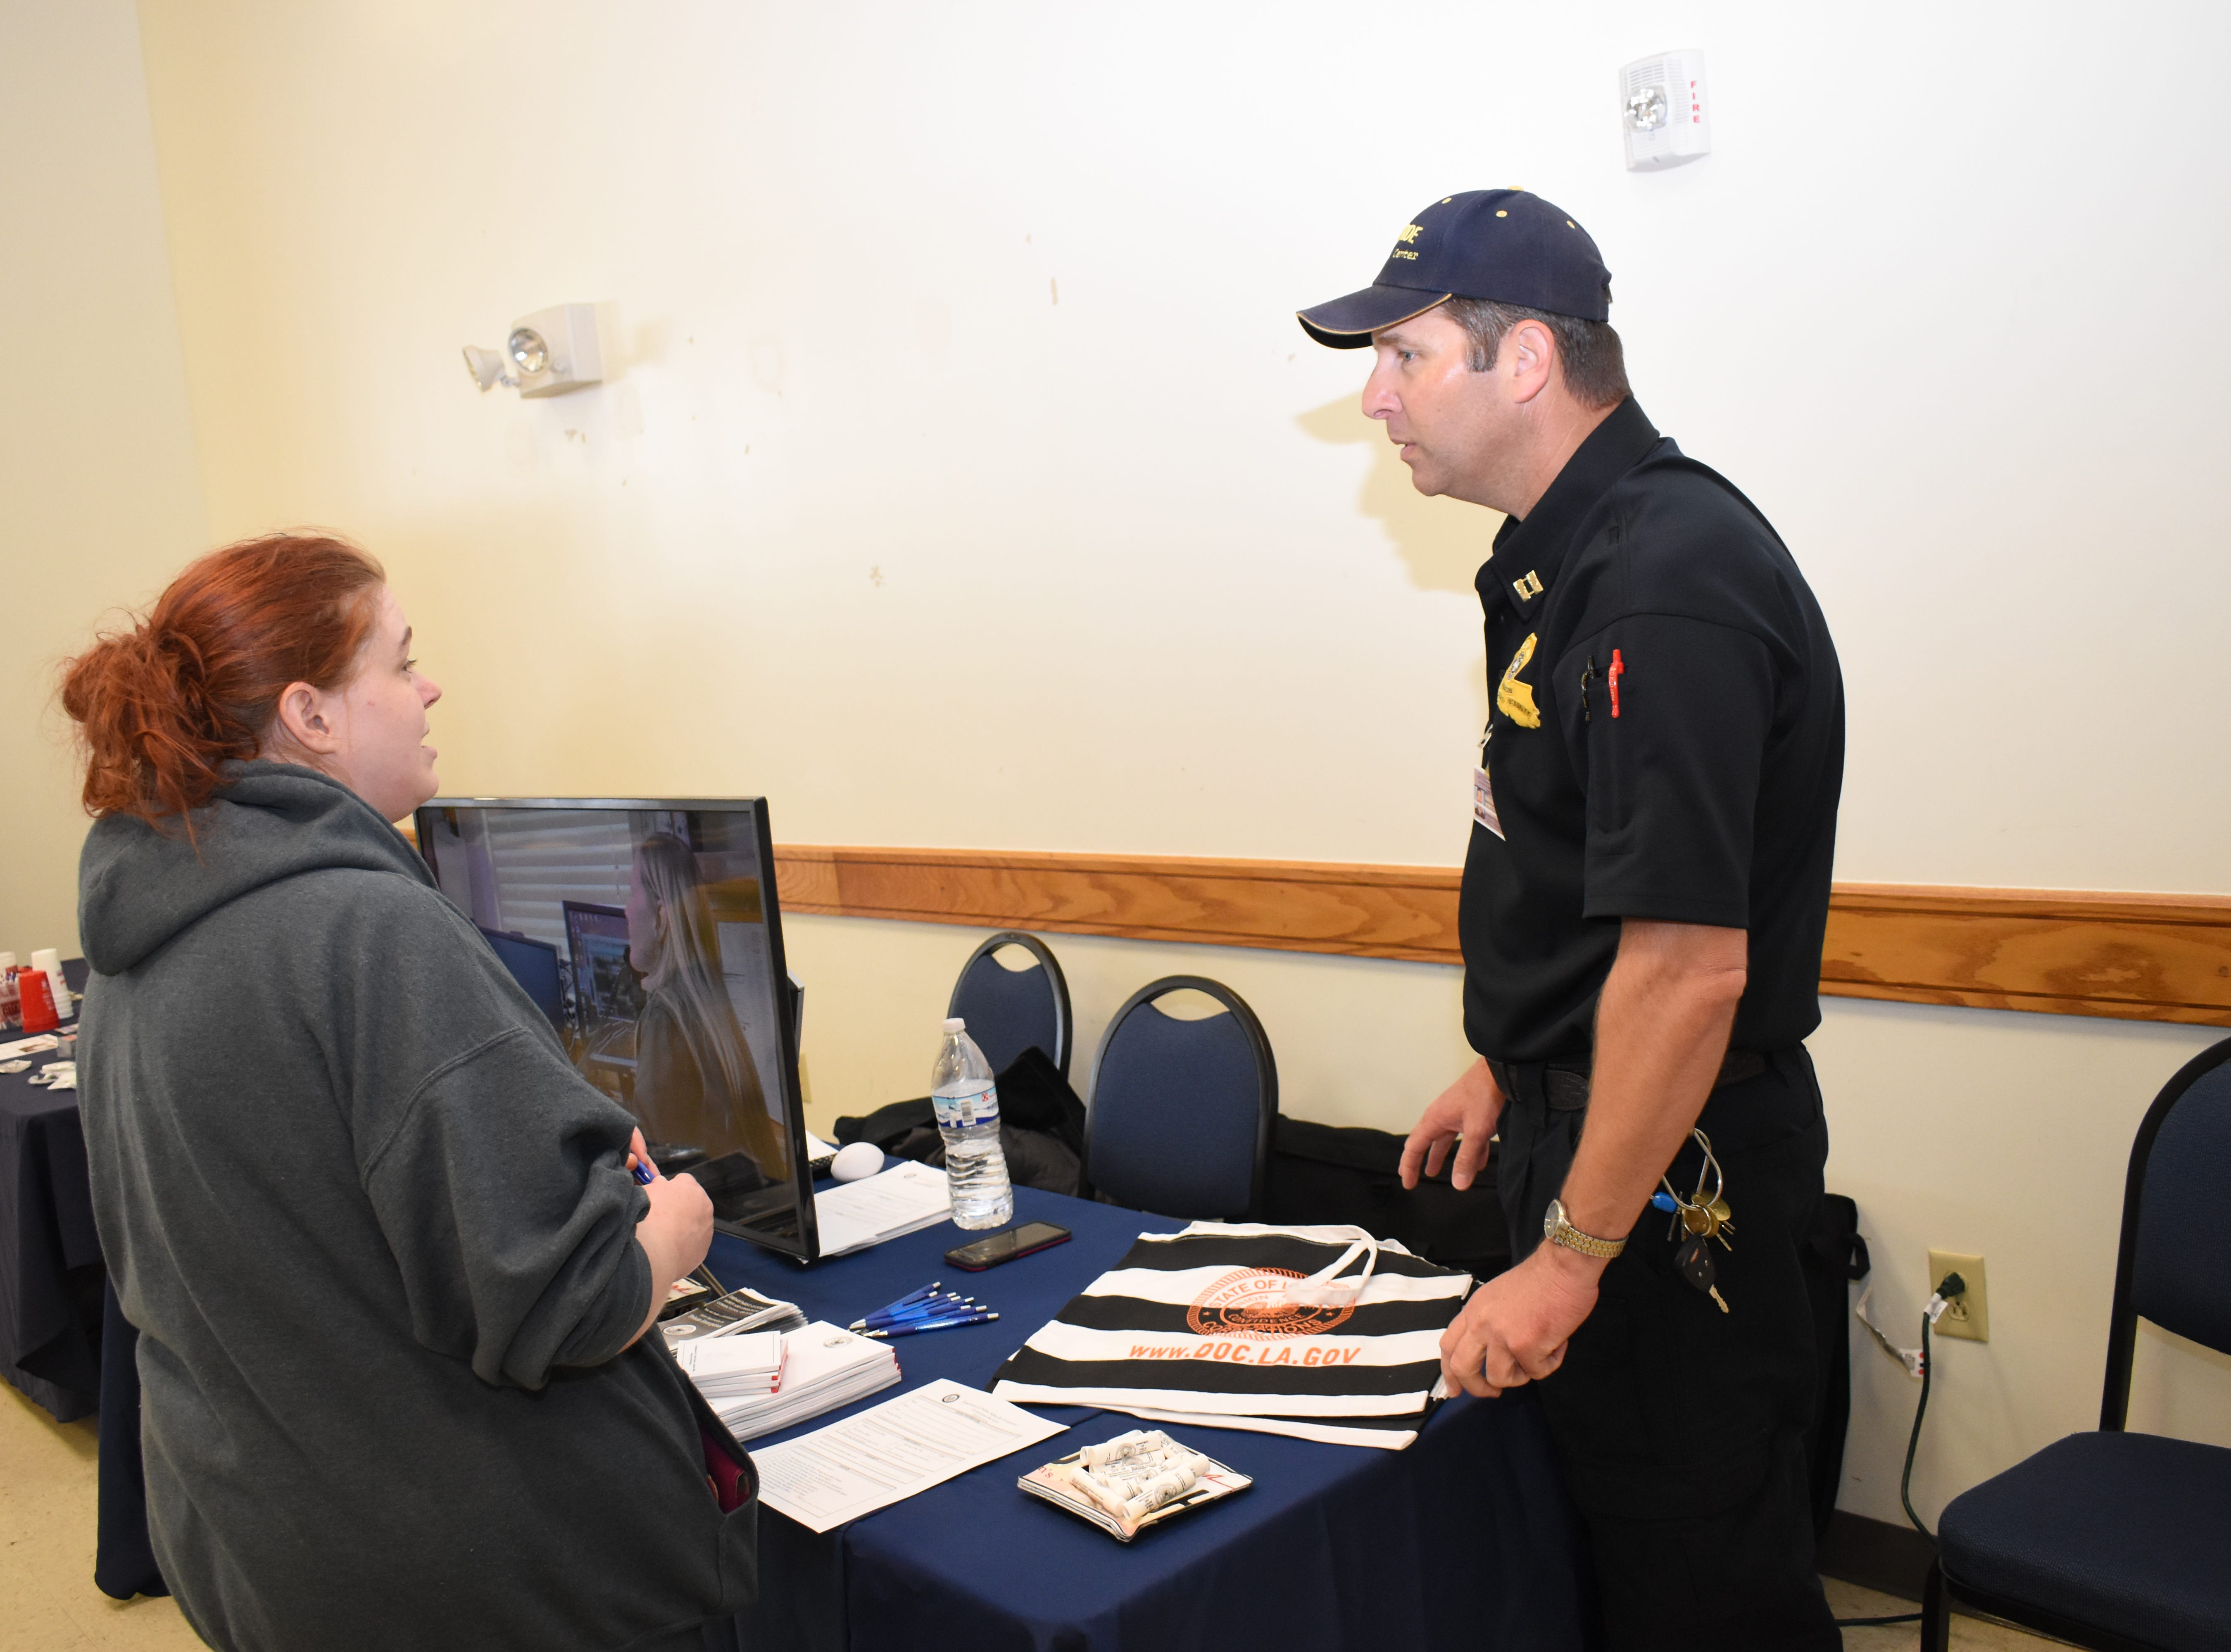 Chad Firmin (right), with the Department of Corrections, talks with Miranda Camp at the Spring Career Fair held Tuesday, March 12, 2019 on the LSUA campus. About 40 businesses such as those involved in education, health care, non-profits and law enforcement were on hand to talk to students and others about job opportunities.